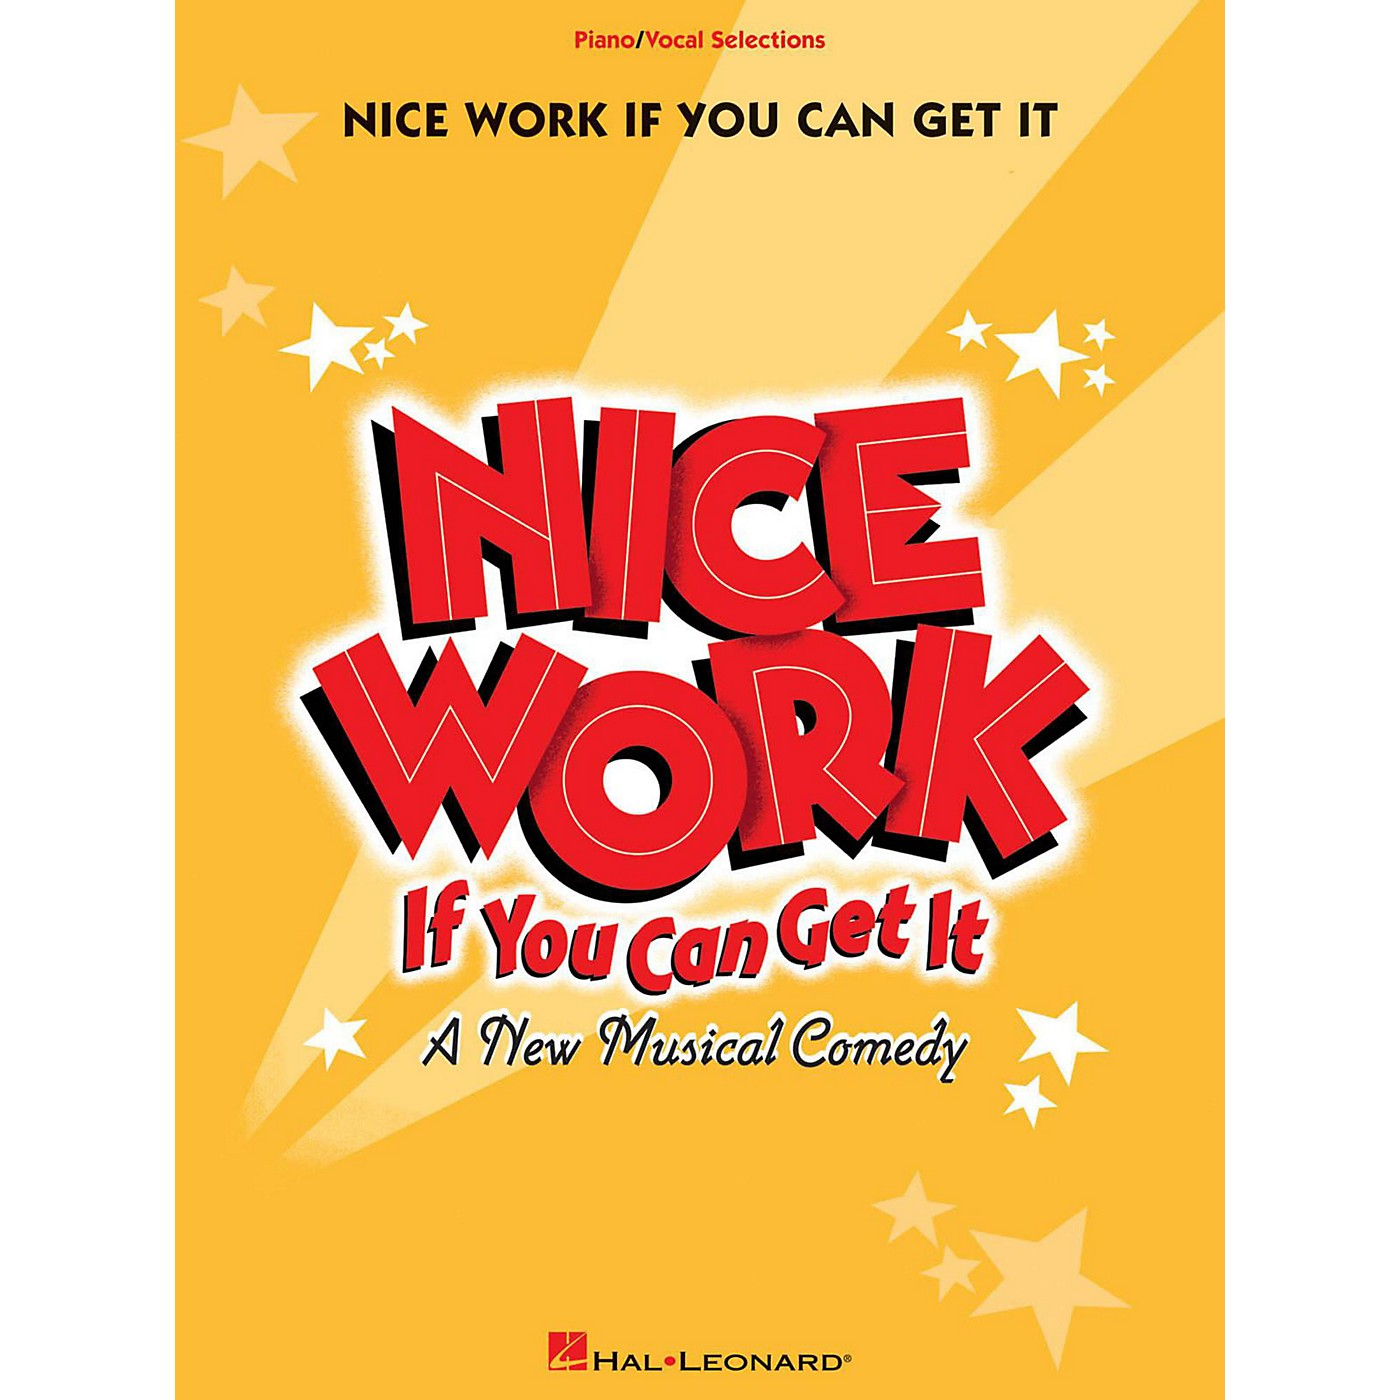 Hal Leonard Nice Work If You Can Get It - Piano/Vocal Selections thumbnail